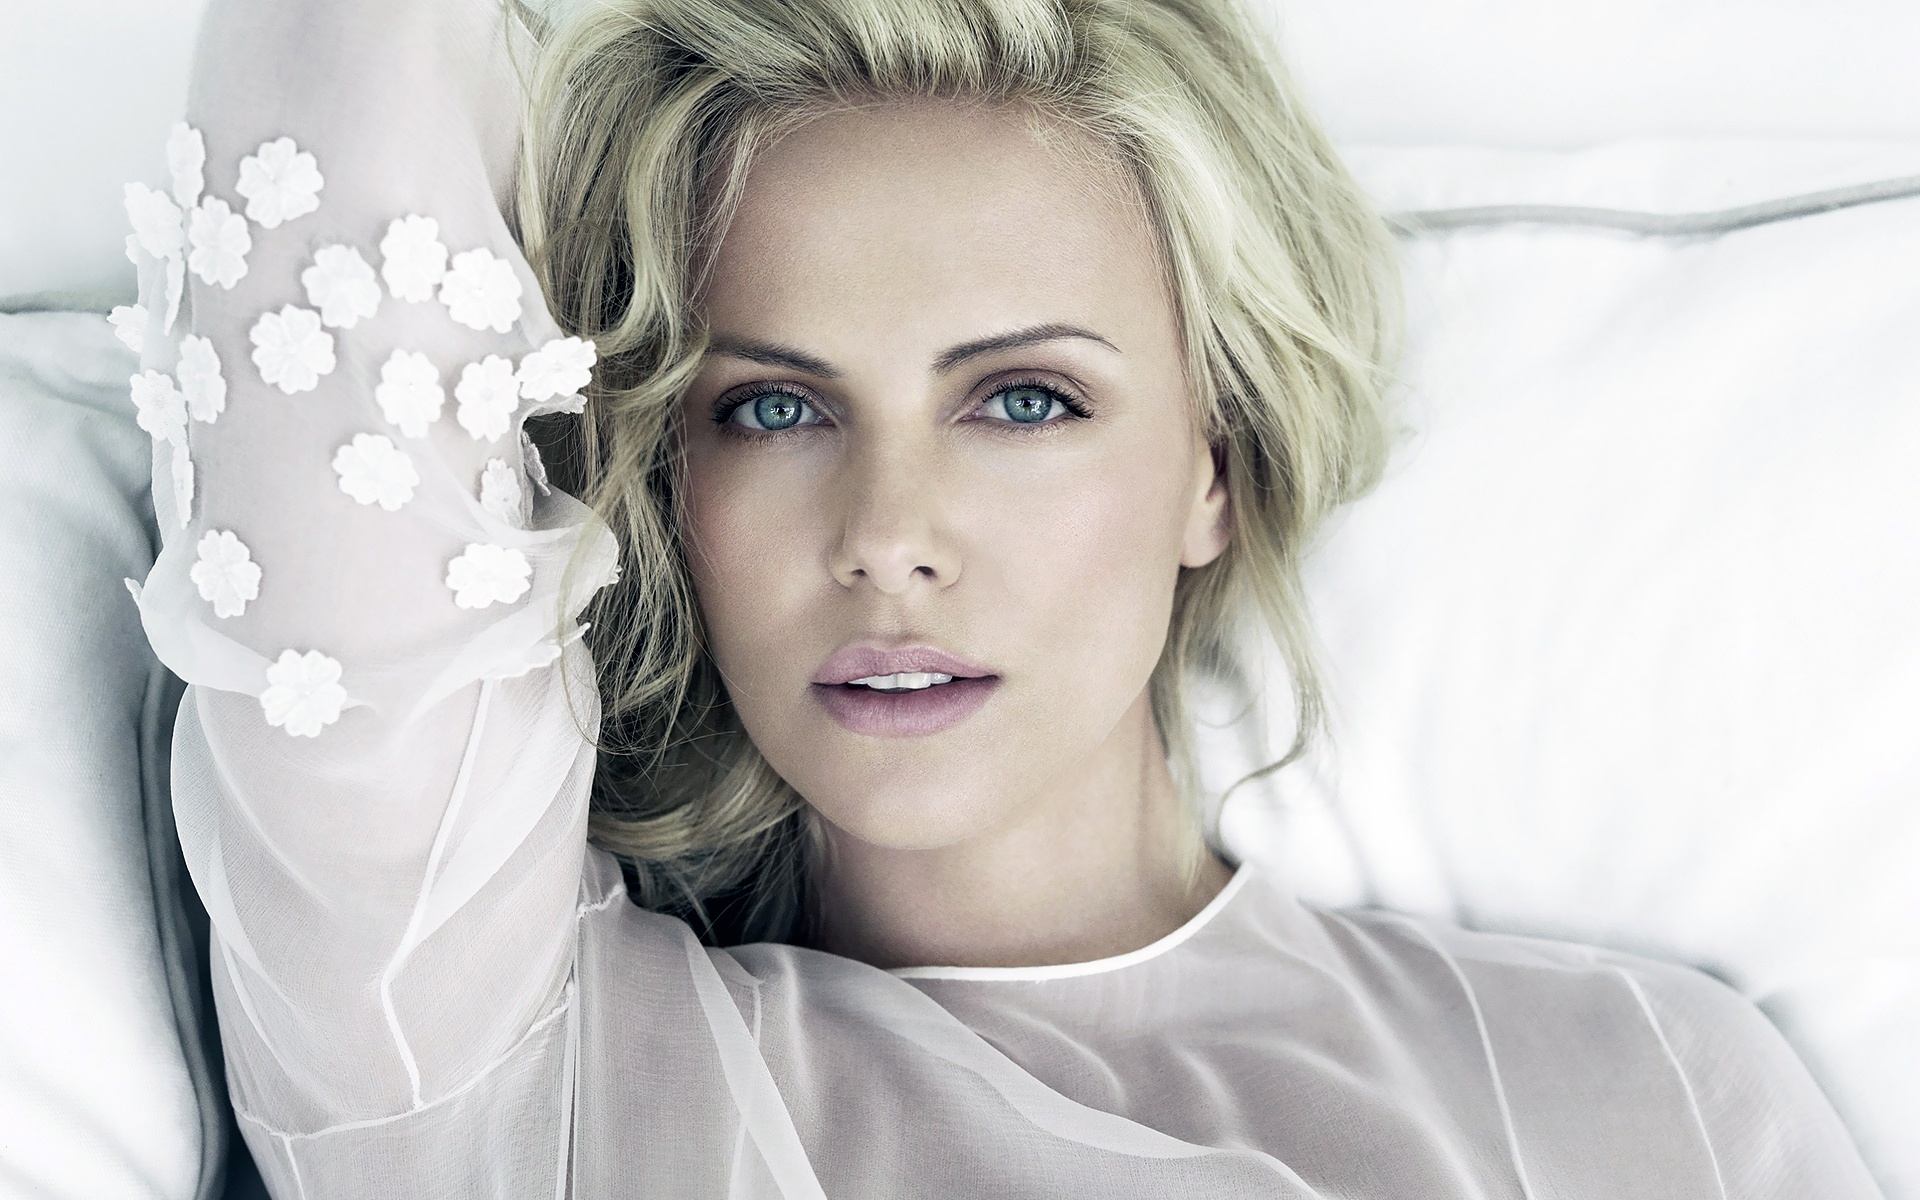 charlize theron wallpapers hd A2